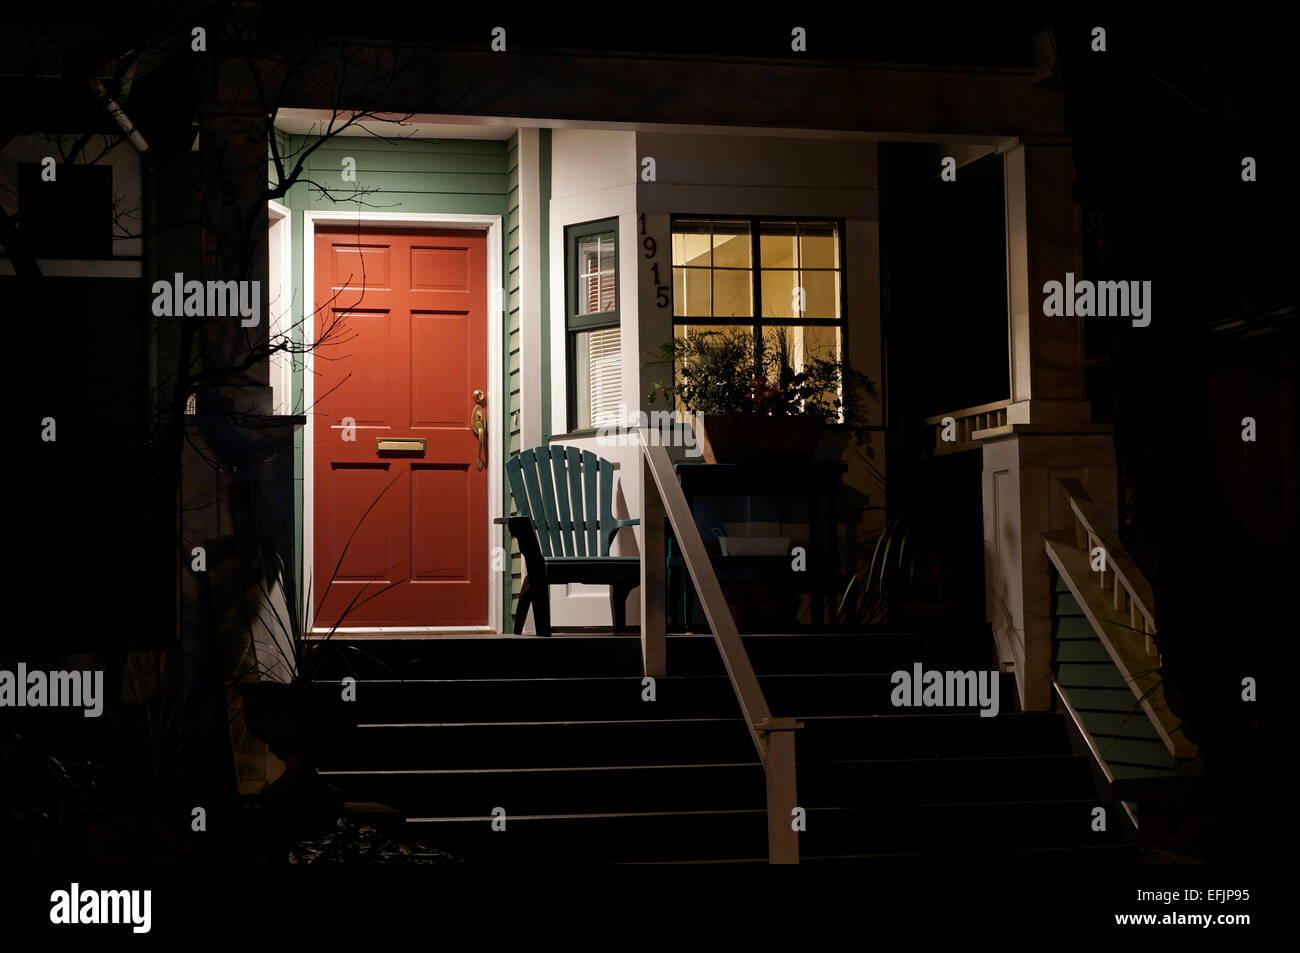 Front porch of a house and red wooden door at night - Stock Image